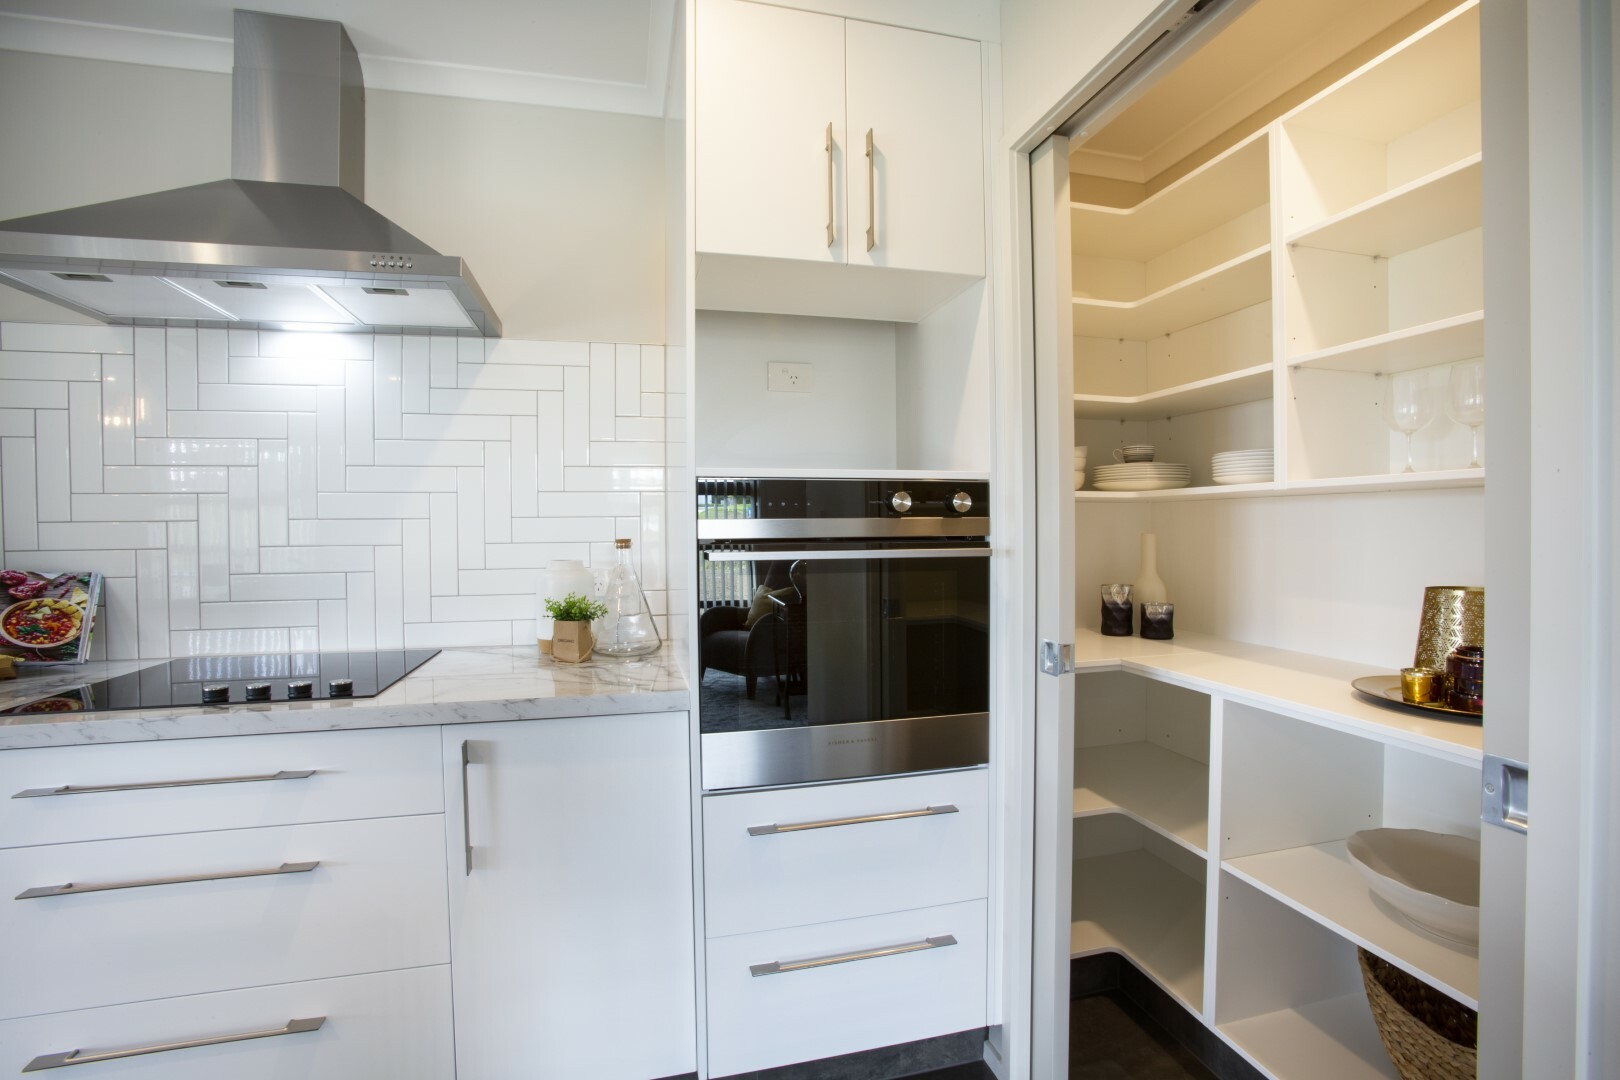 Walk In Pantry Vs Scullery Debate Generation Homes Nz Building Tips